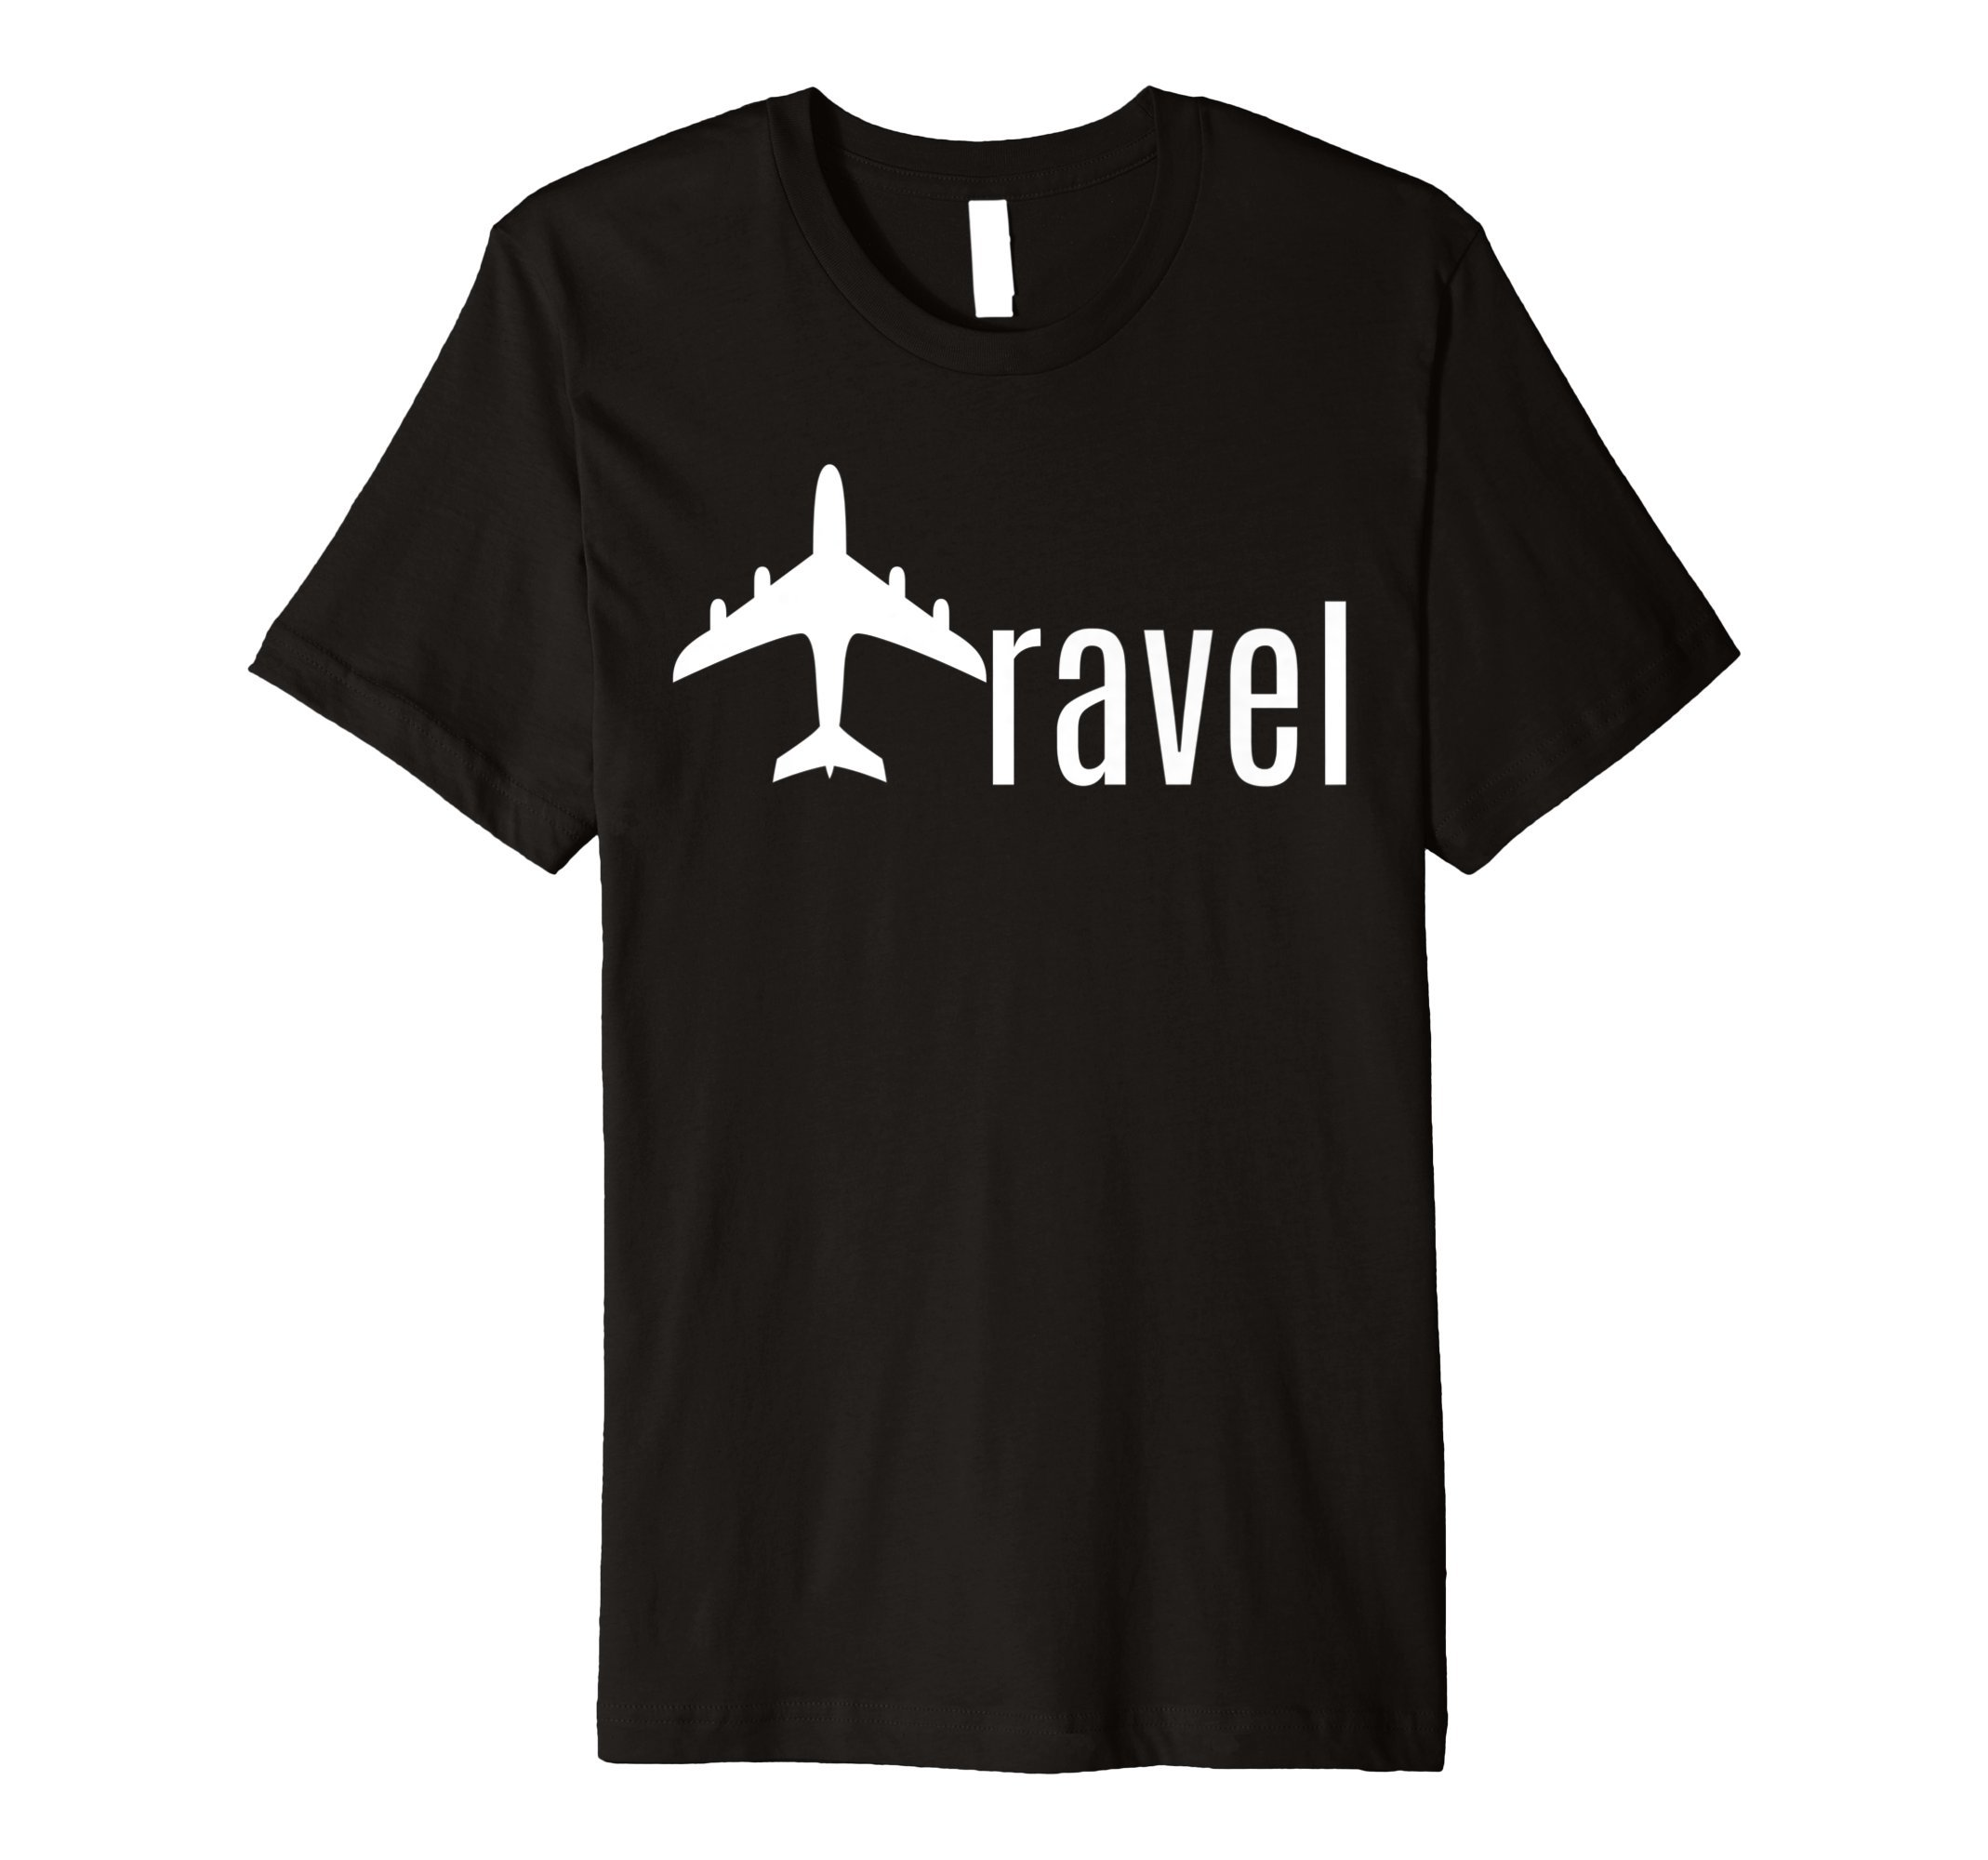 FITTED Minimalistic Travel - plane pun Tee- Traveling Gift